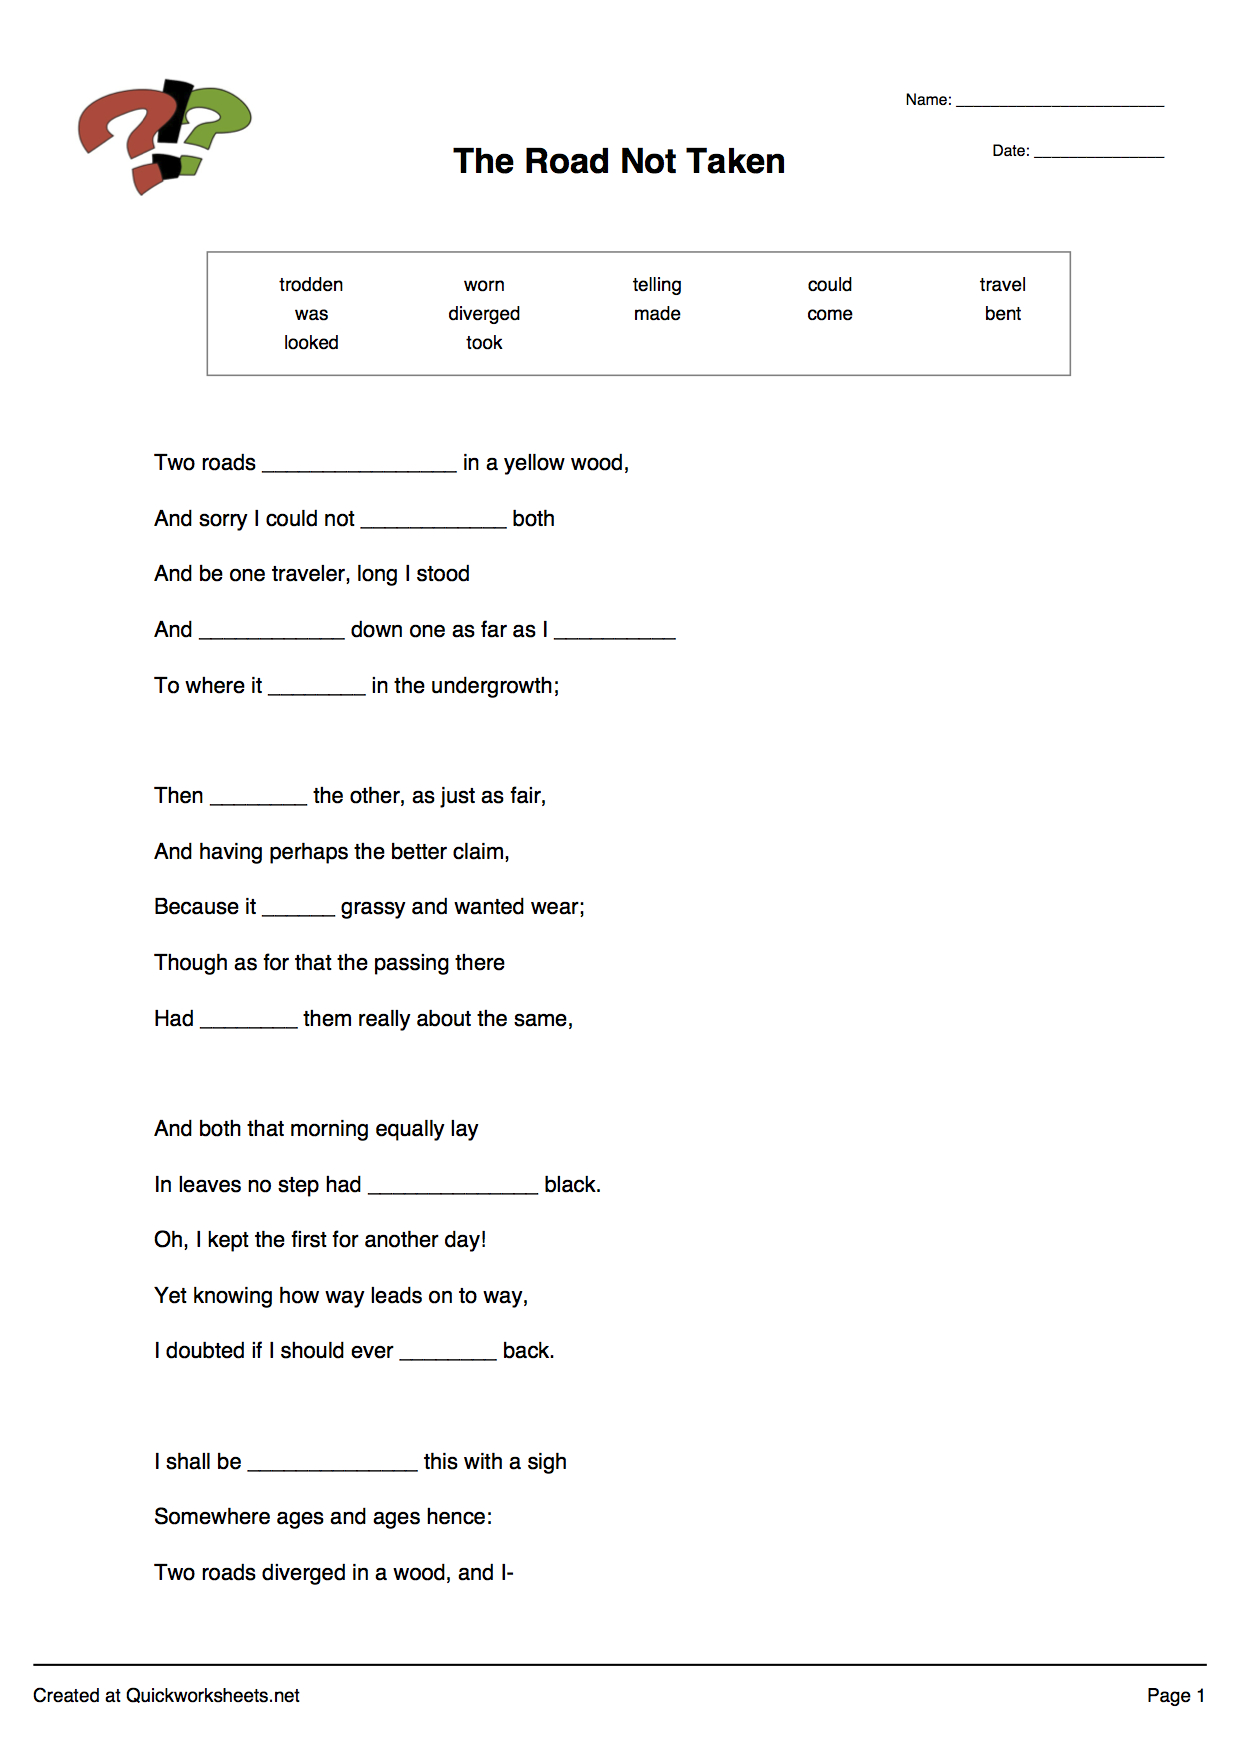 Word Scramble, Wordsearch, Crossword, Matching Pairs And Other - Free Printable Multiple Choice Spelling Test Maker